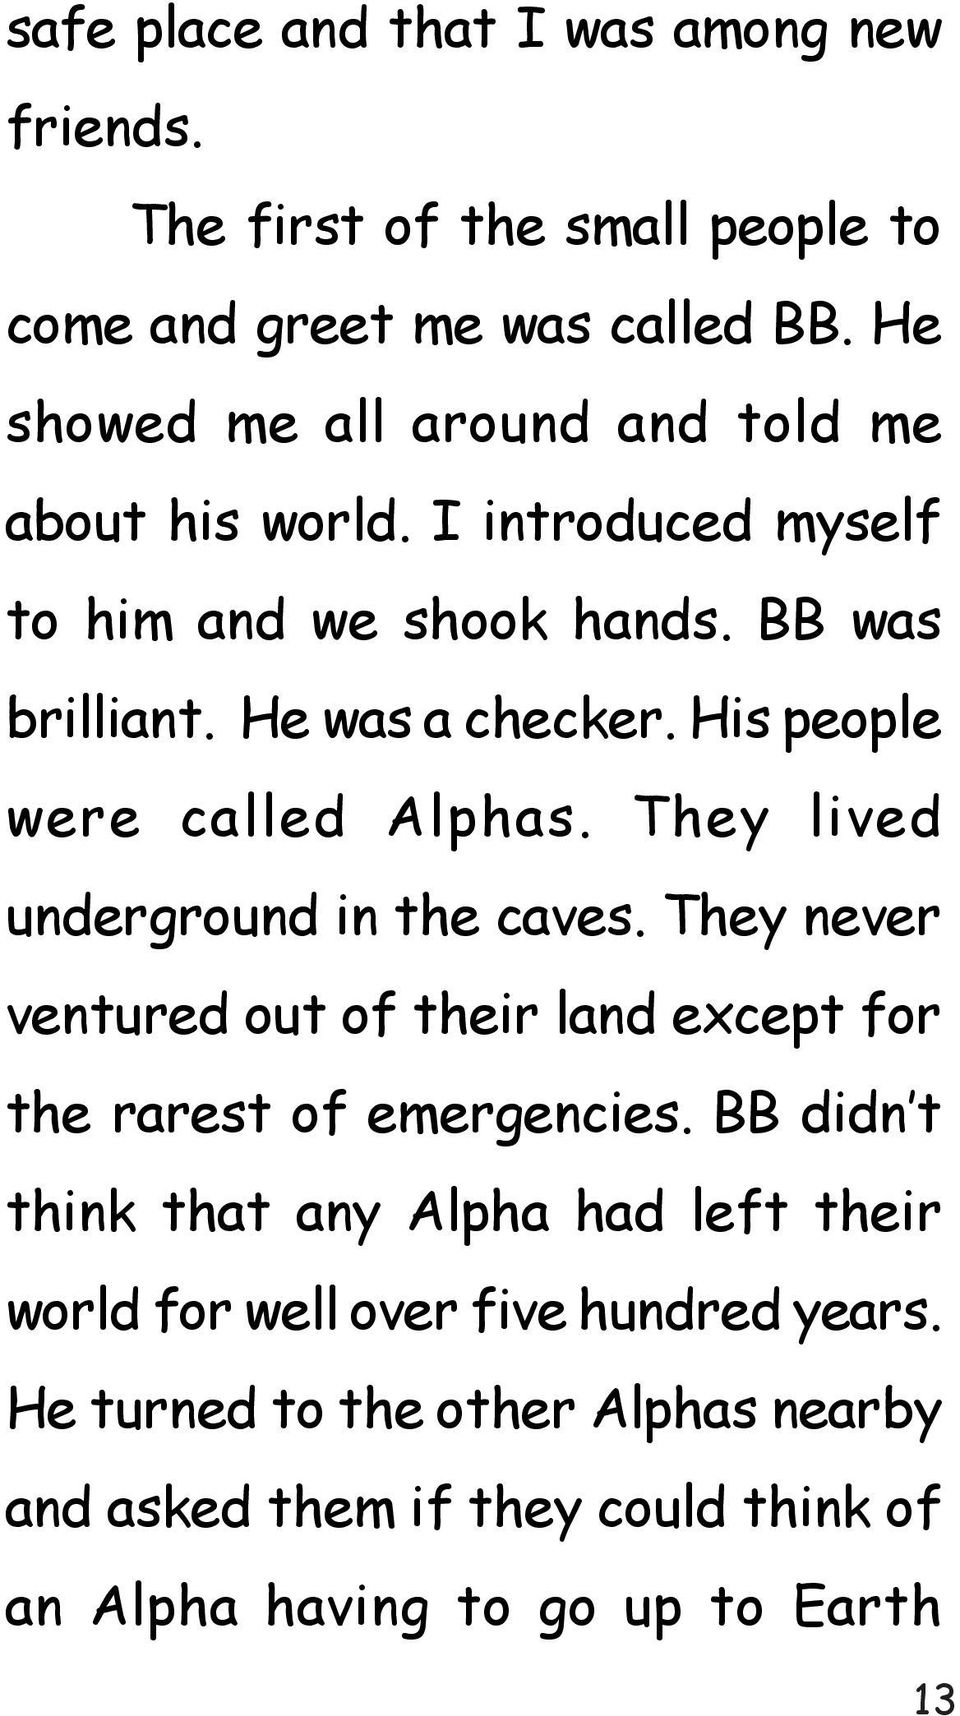 His people were called Alphas. They lived underground in the caves. They never ventured out of their land except for the rarest of emergencies.